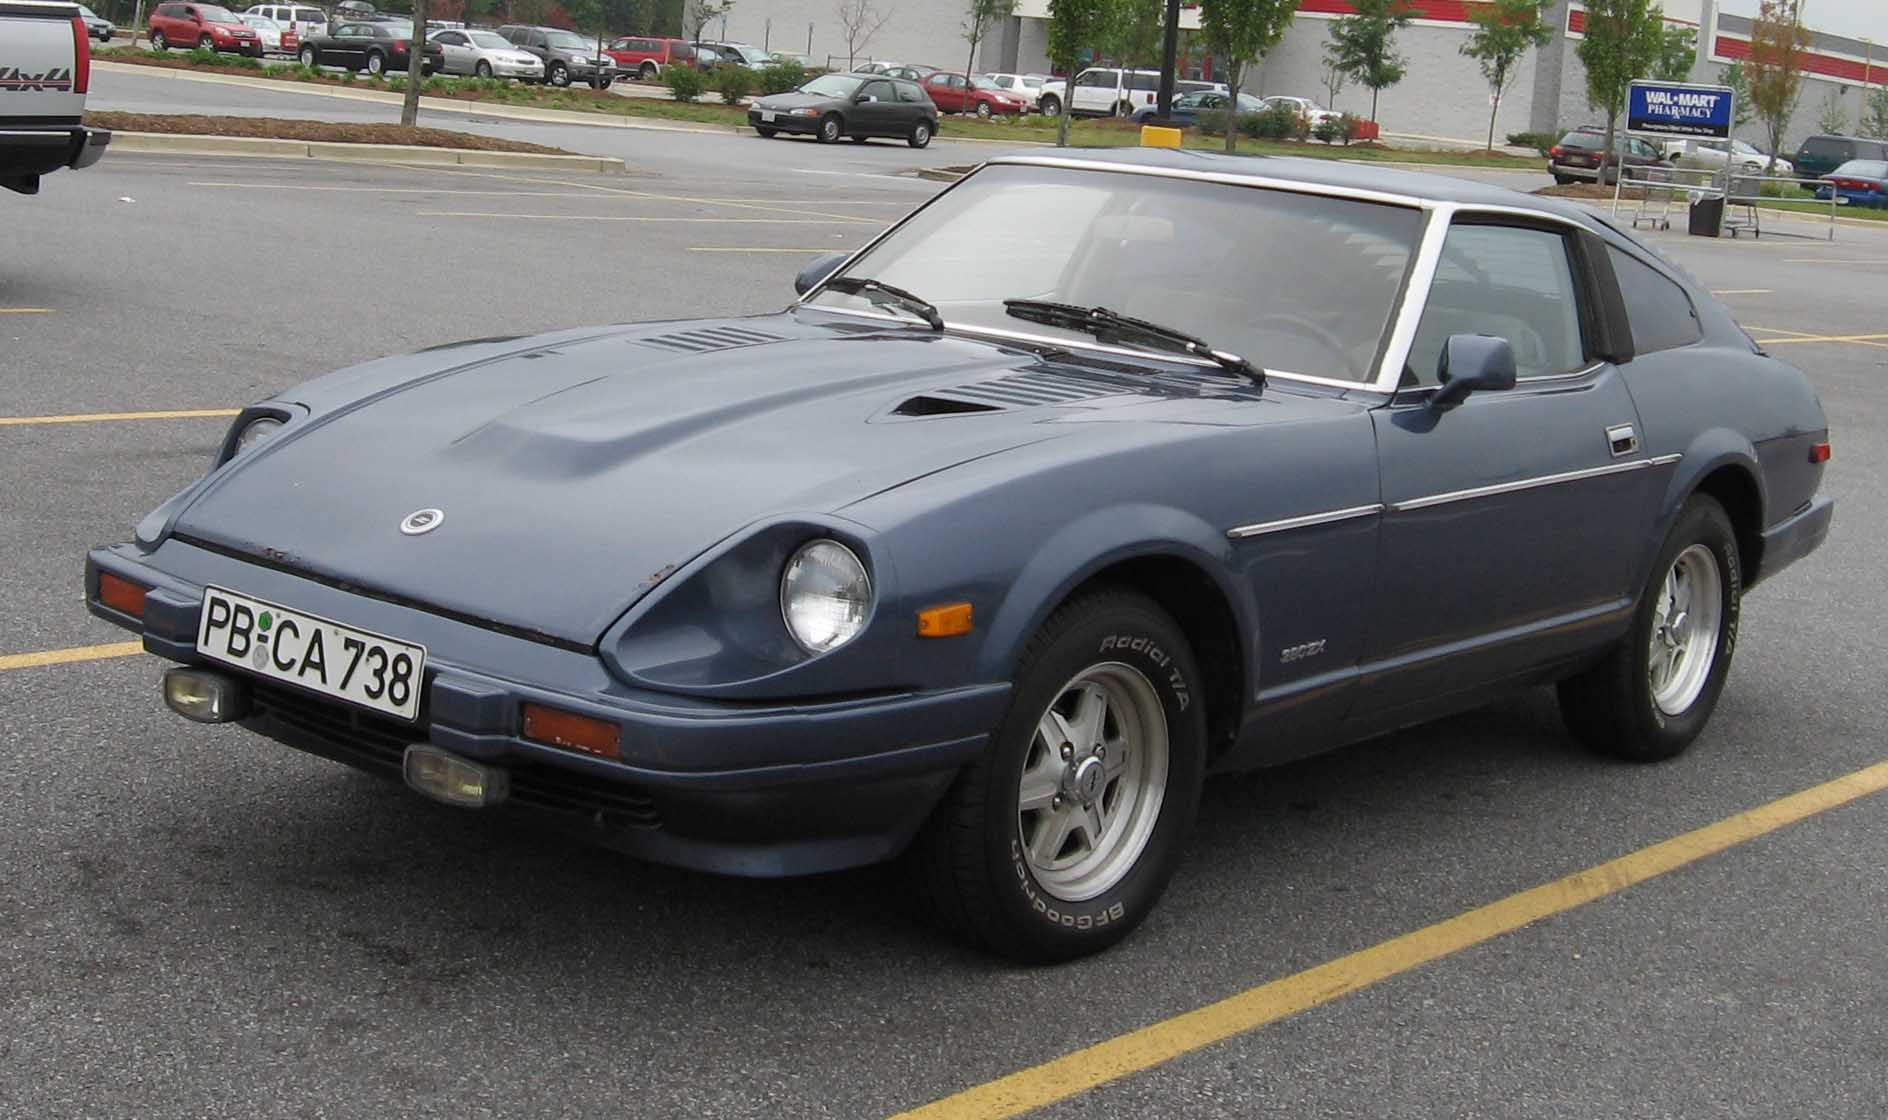 Datsun 240z For Sale >> datsun related images,start 0 - WeiLi Automotive Network